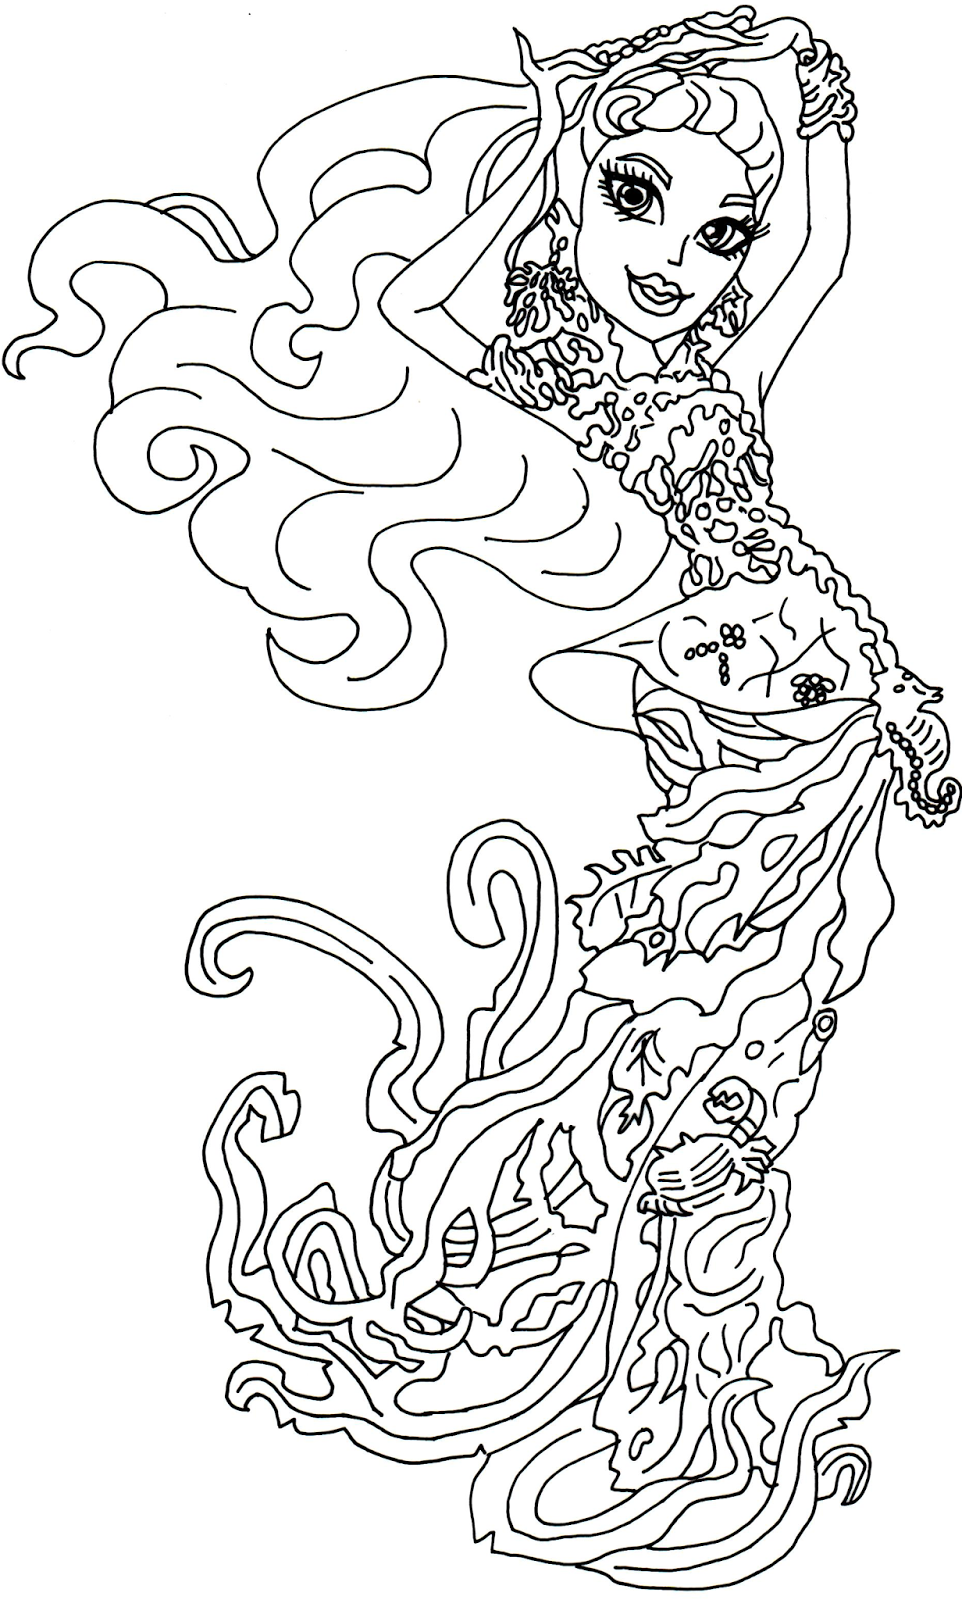 Free Printable Monster High Coloring Pages: Posea Reef ...